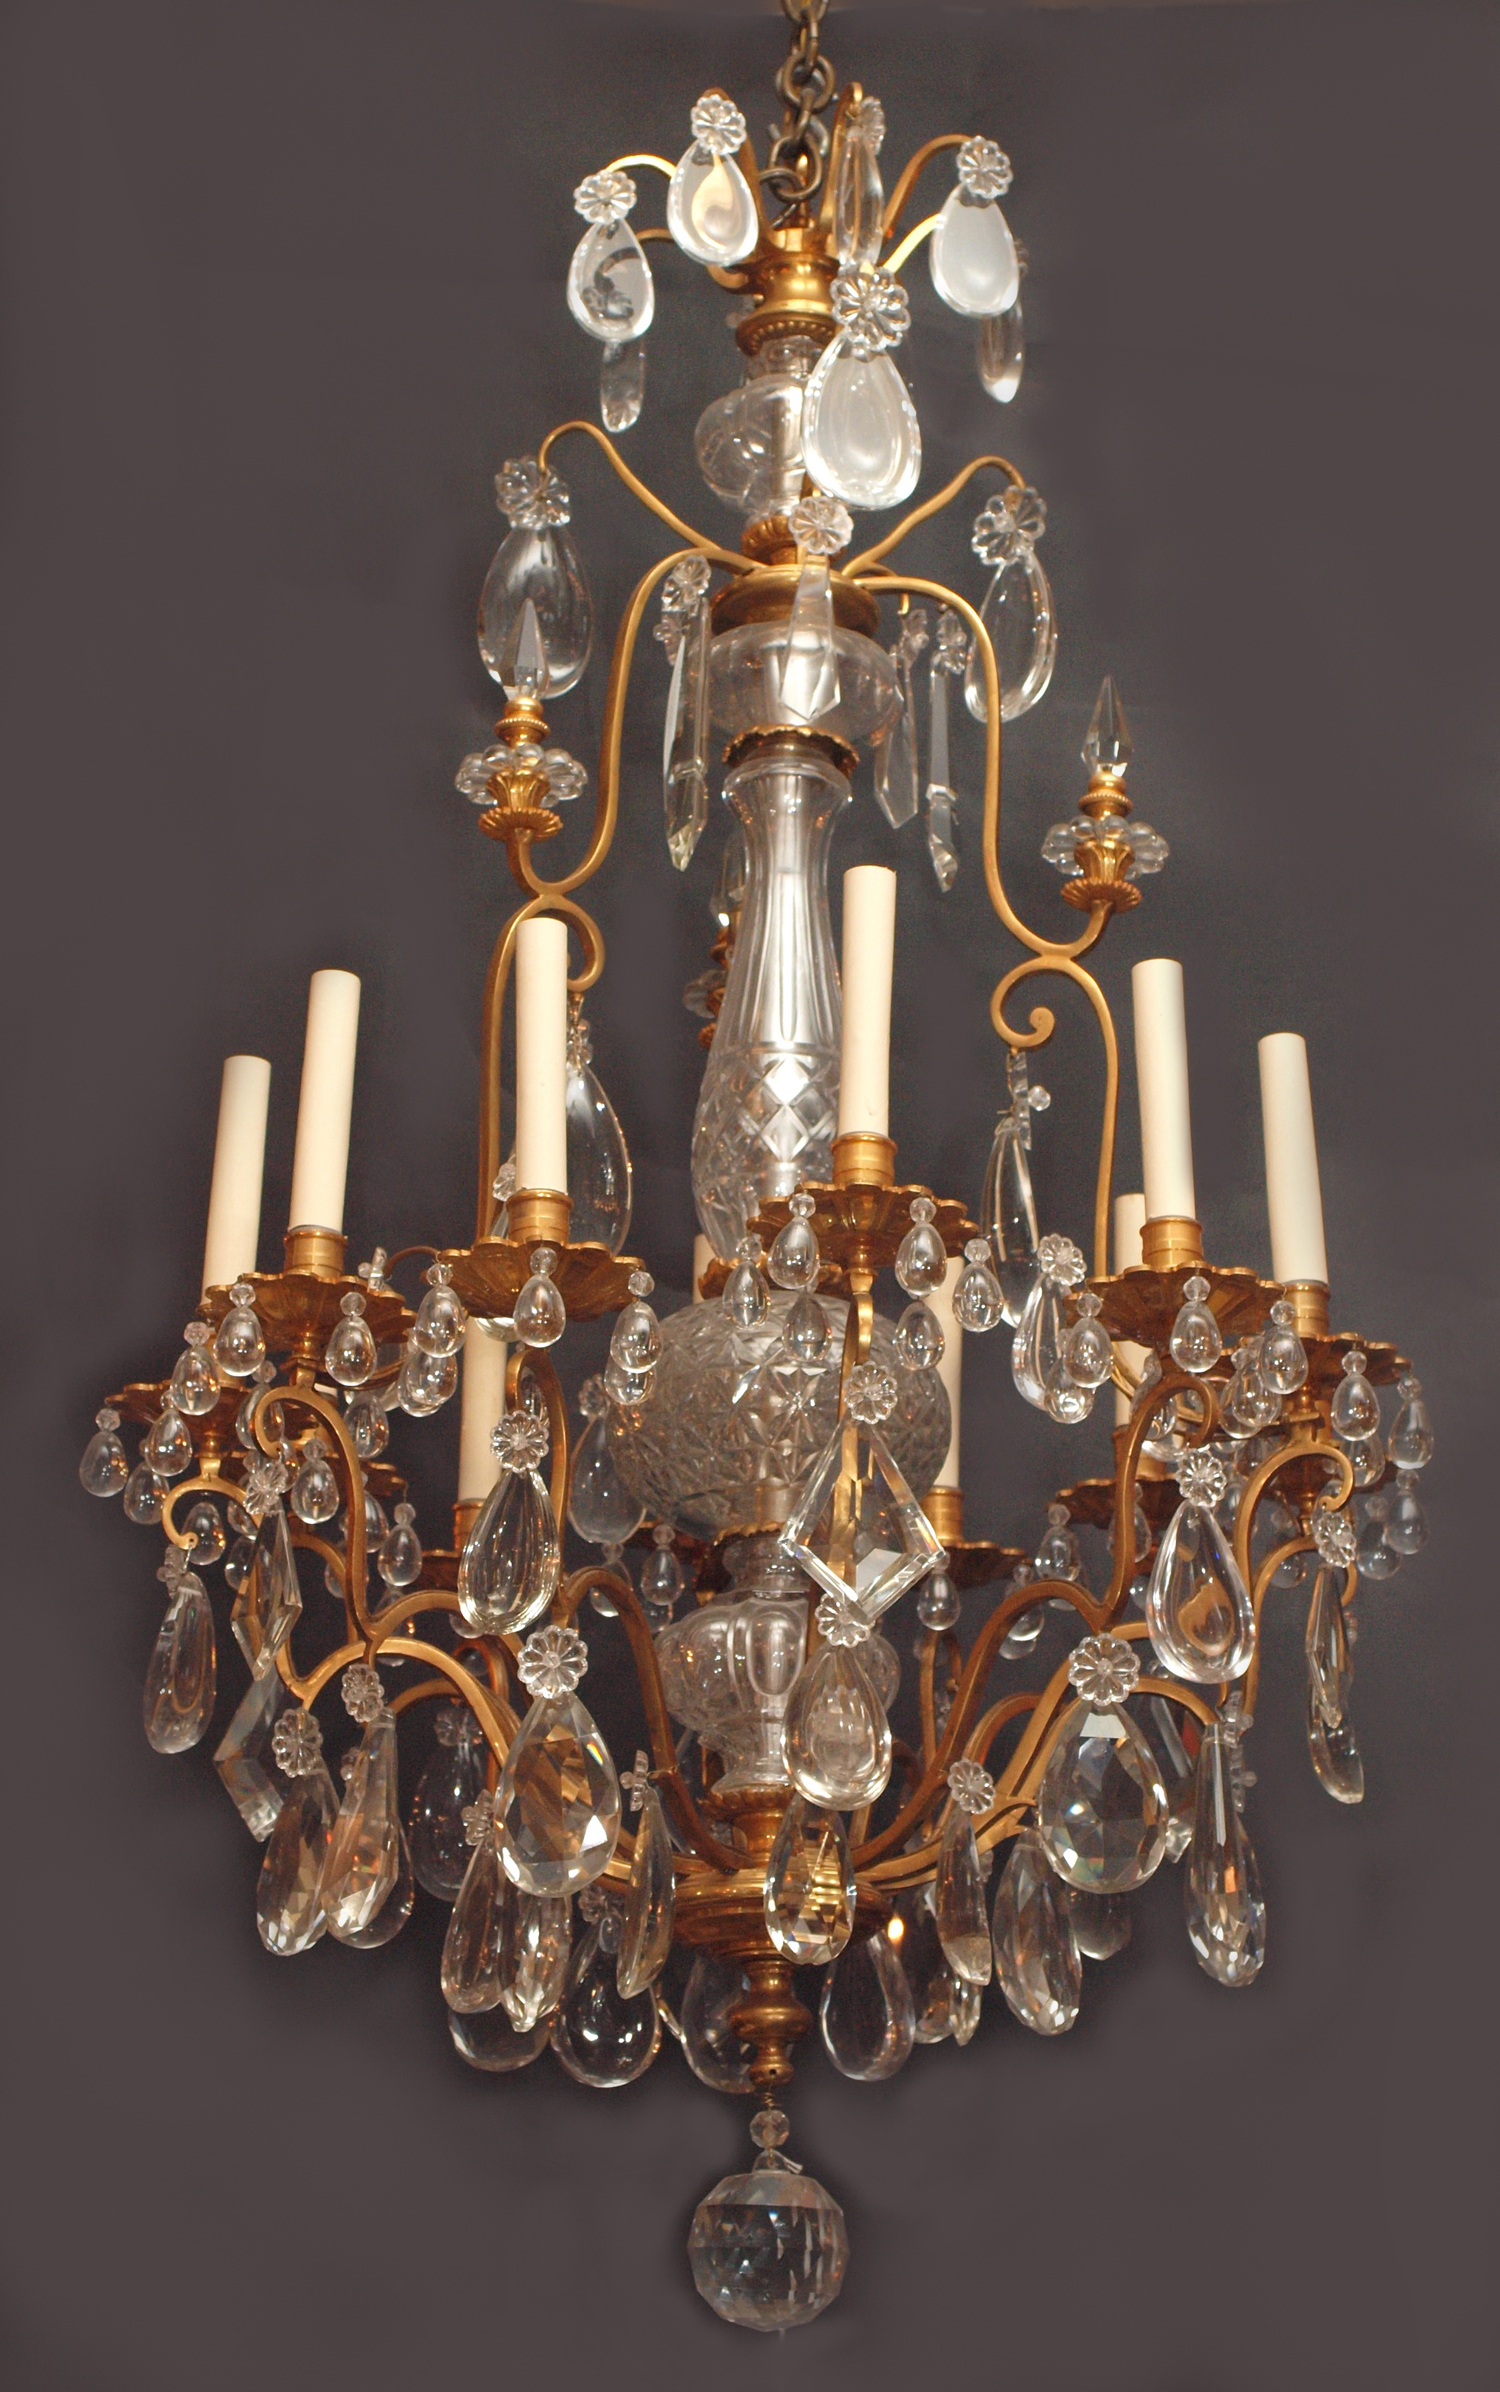 Antique french crystal and bronze d 39 ore chandelier chc122 for sale classifieds - Chandeliers on sale online ...